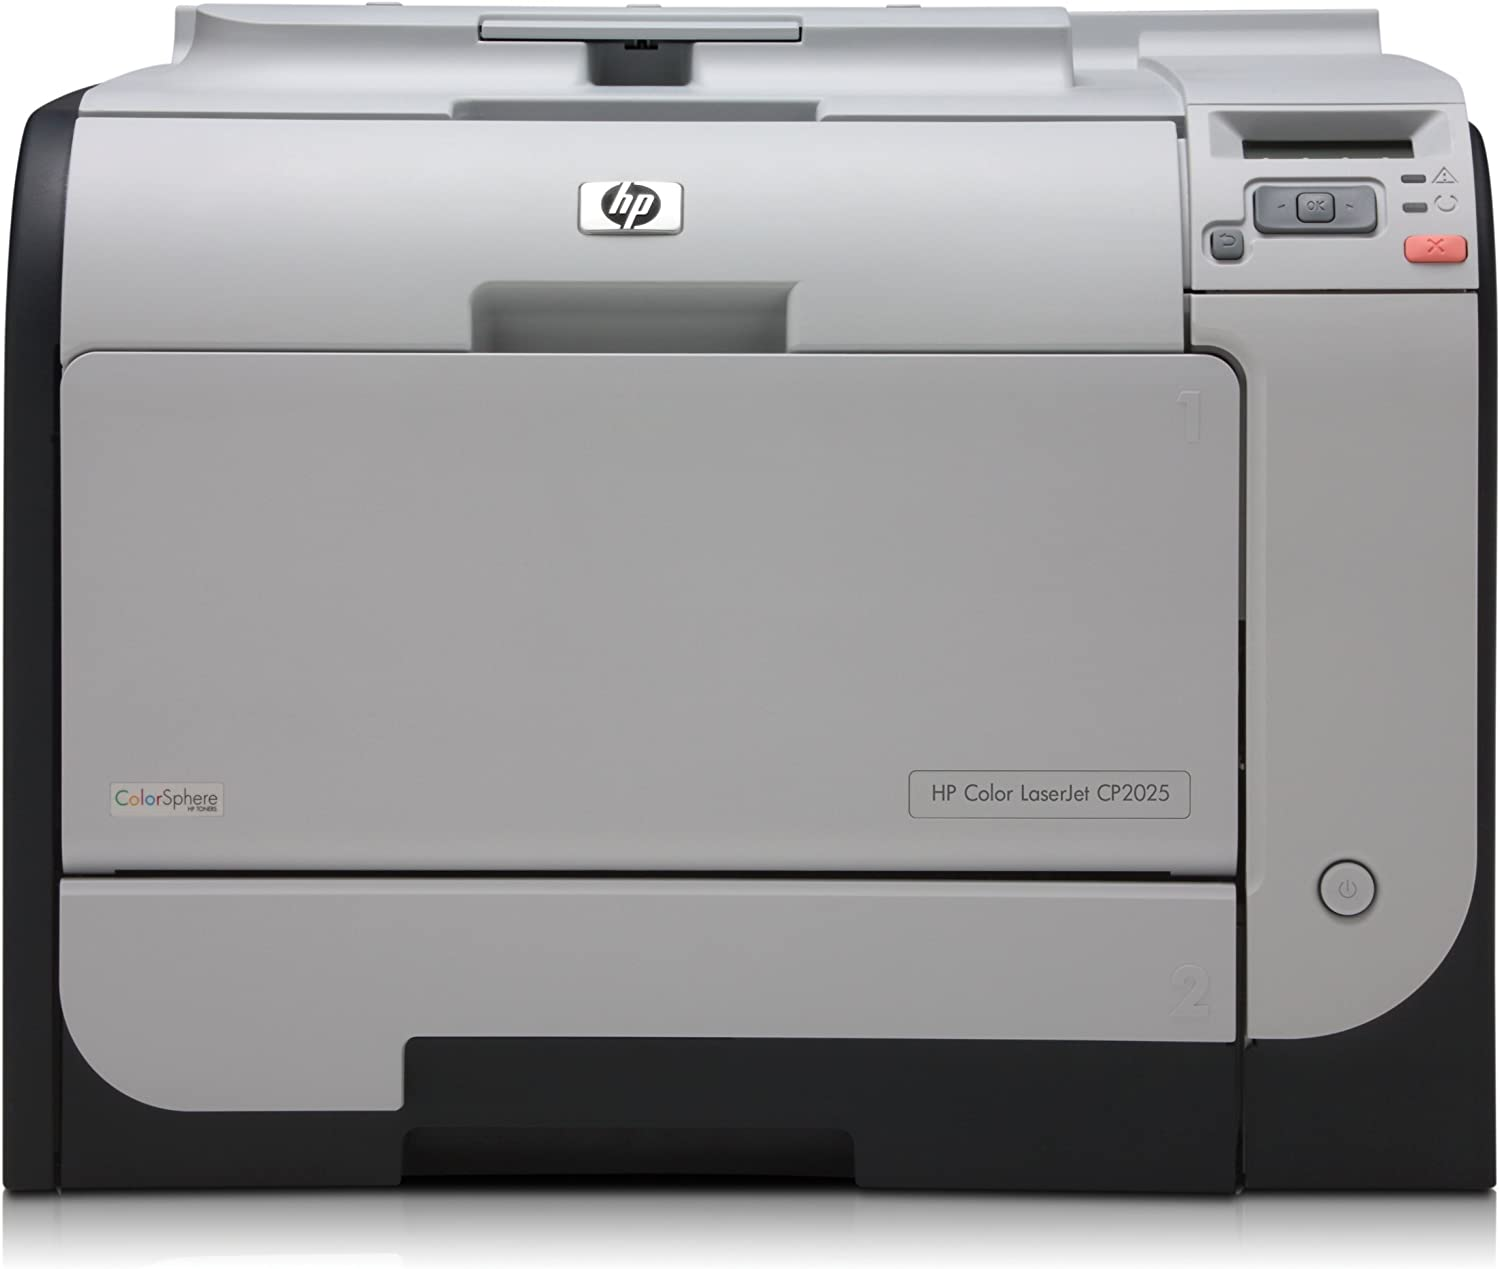 HP LaserJet Impresora HP Color LaserJet CP2025n: Amazon.es: Electrónica